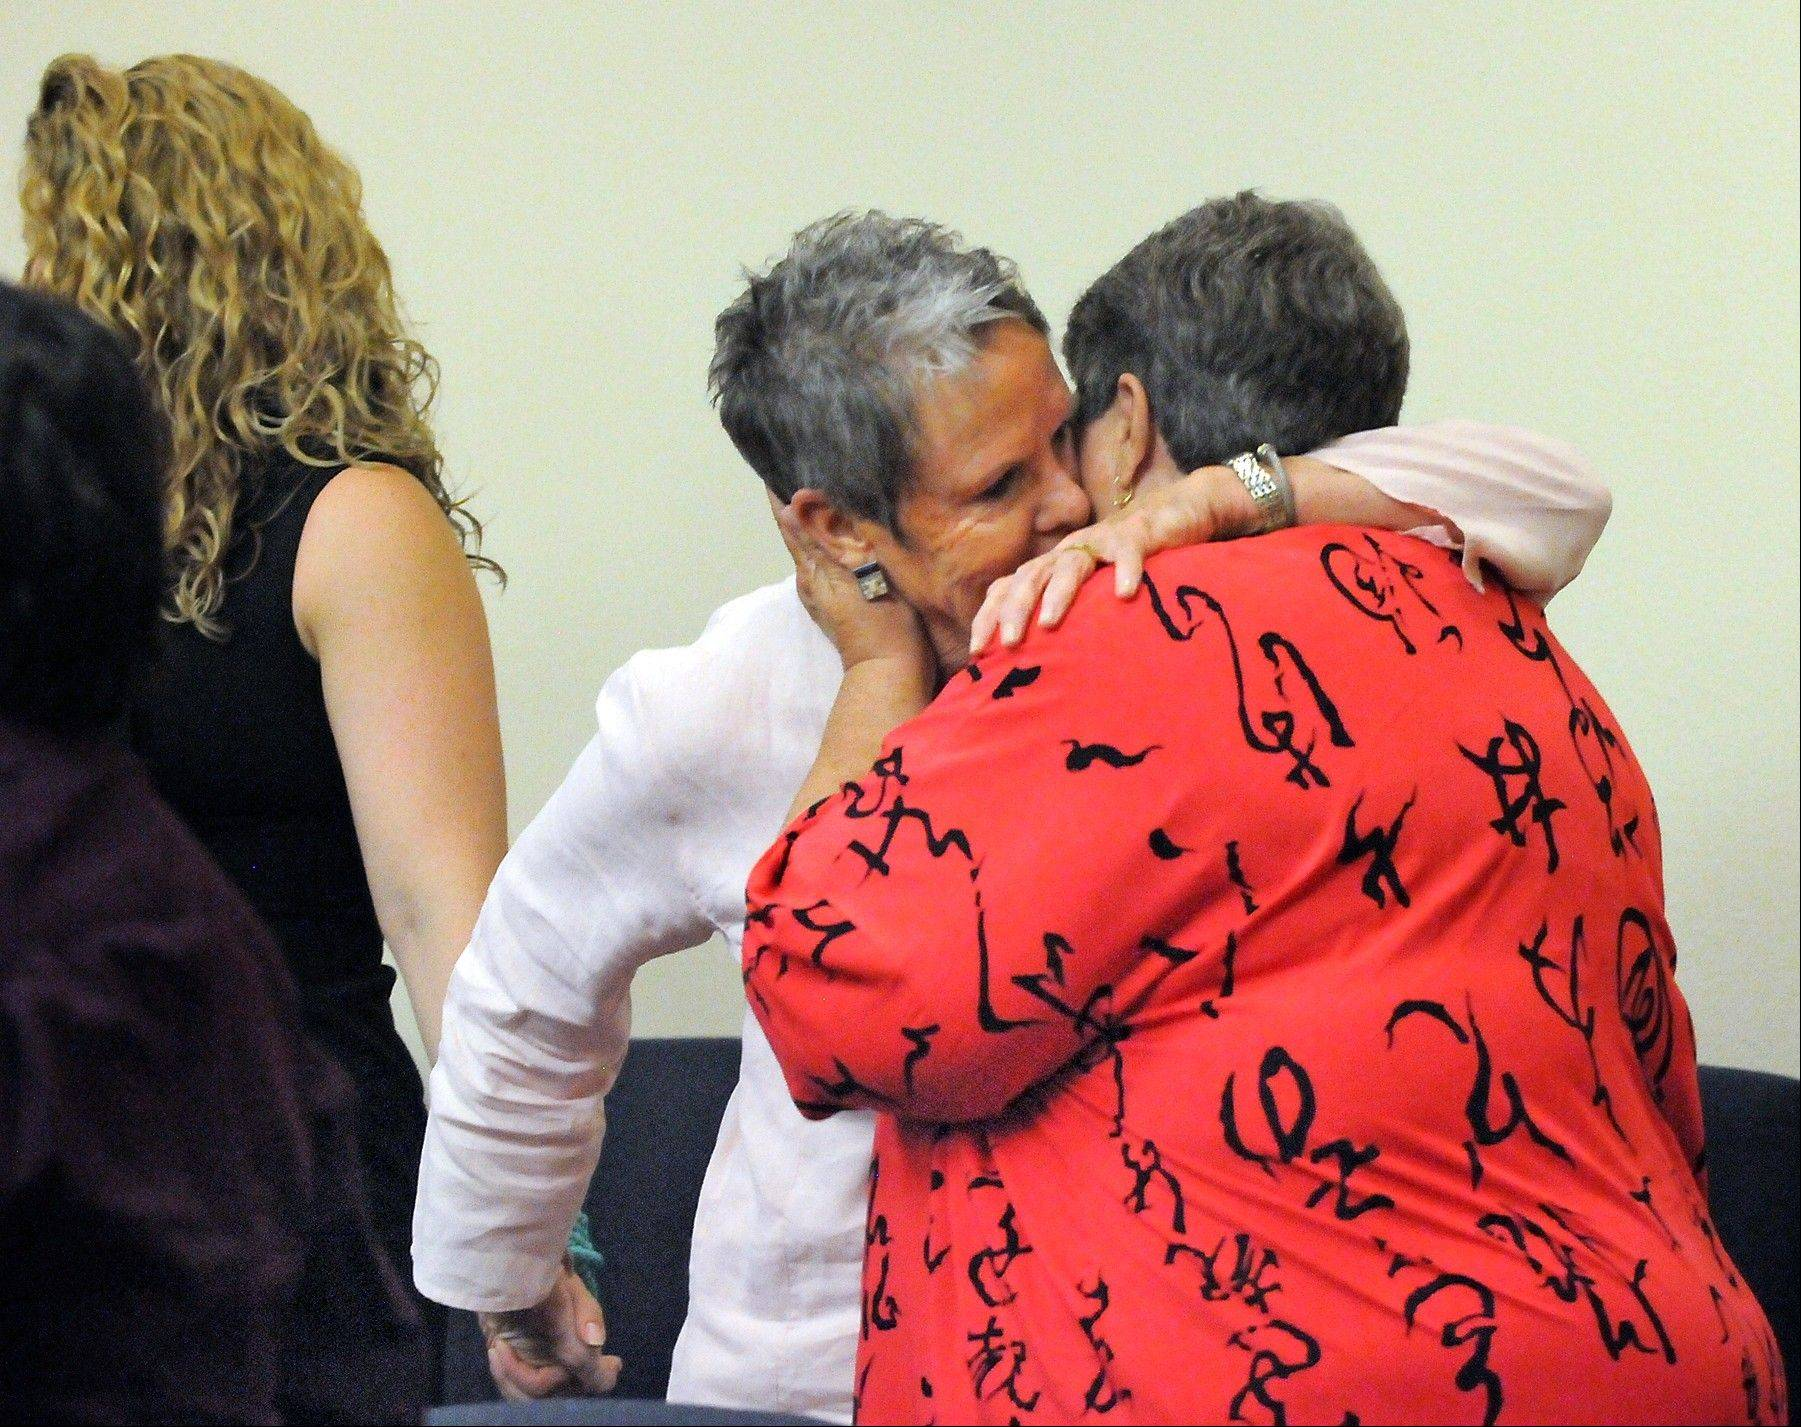 Ona Porter, center, gives her partner Miriam Rand, right, a hug while holding the hand of their daughter Emilie Porter-Rand, left, Monday Aug. 26, 2013, after Judge Alan M. Malott made his ruling on licenses for same sex couples in Bernalillo County, N.M.